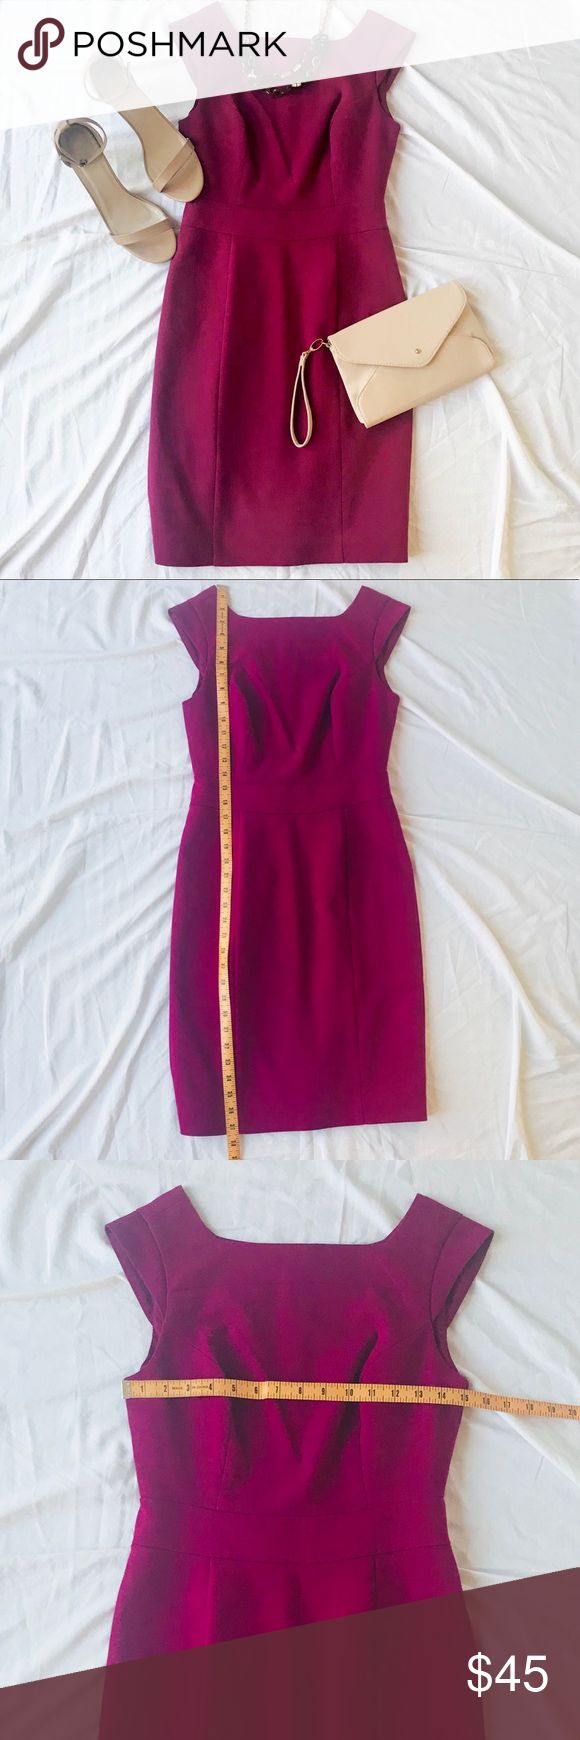 The Limited Dark Magenta Sheath Dress Size 2 The Limited Dark Magenta Sheath Dress Size 2 - The color is a dark magenta, with more red than purple. Almost close to a burgundy. - Can be worn to work with a blazer or cardigan or dress up with some jewelry for a date night. - Hidden back zipper with hook & eye closure - Machine washable - Excellent condition  - Wear to work dress, career dress, job interview dress, business casual dress, Valentine's Day dress, date night dress,- Wear to work…